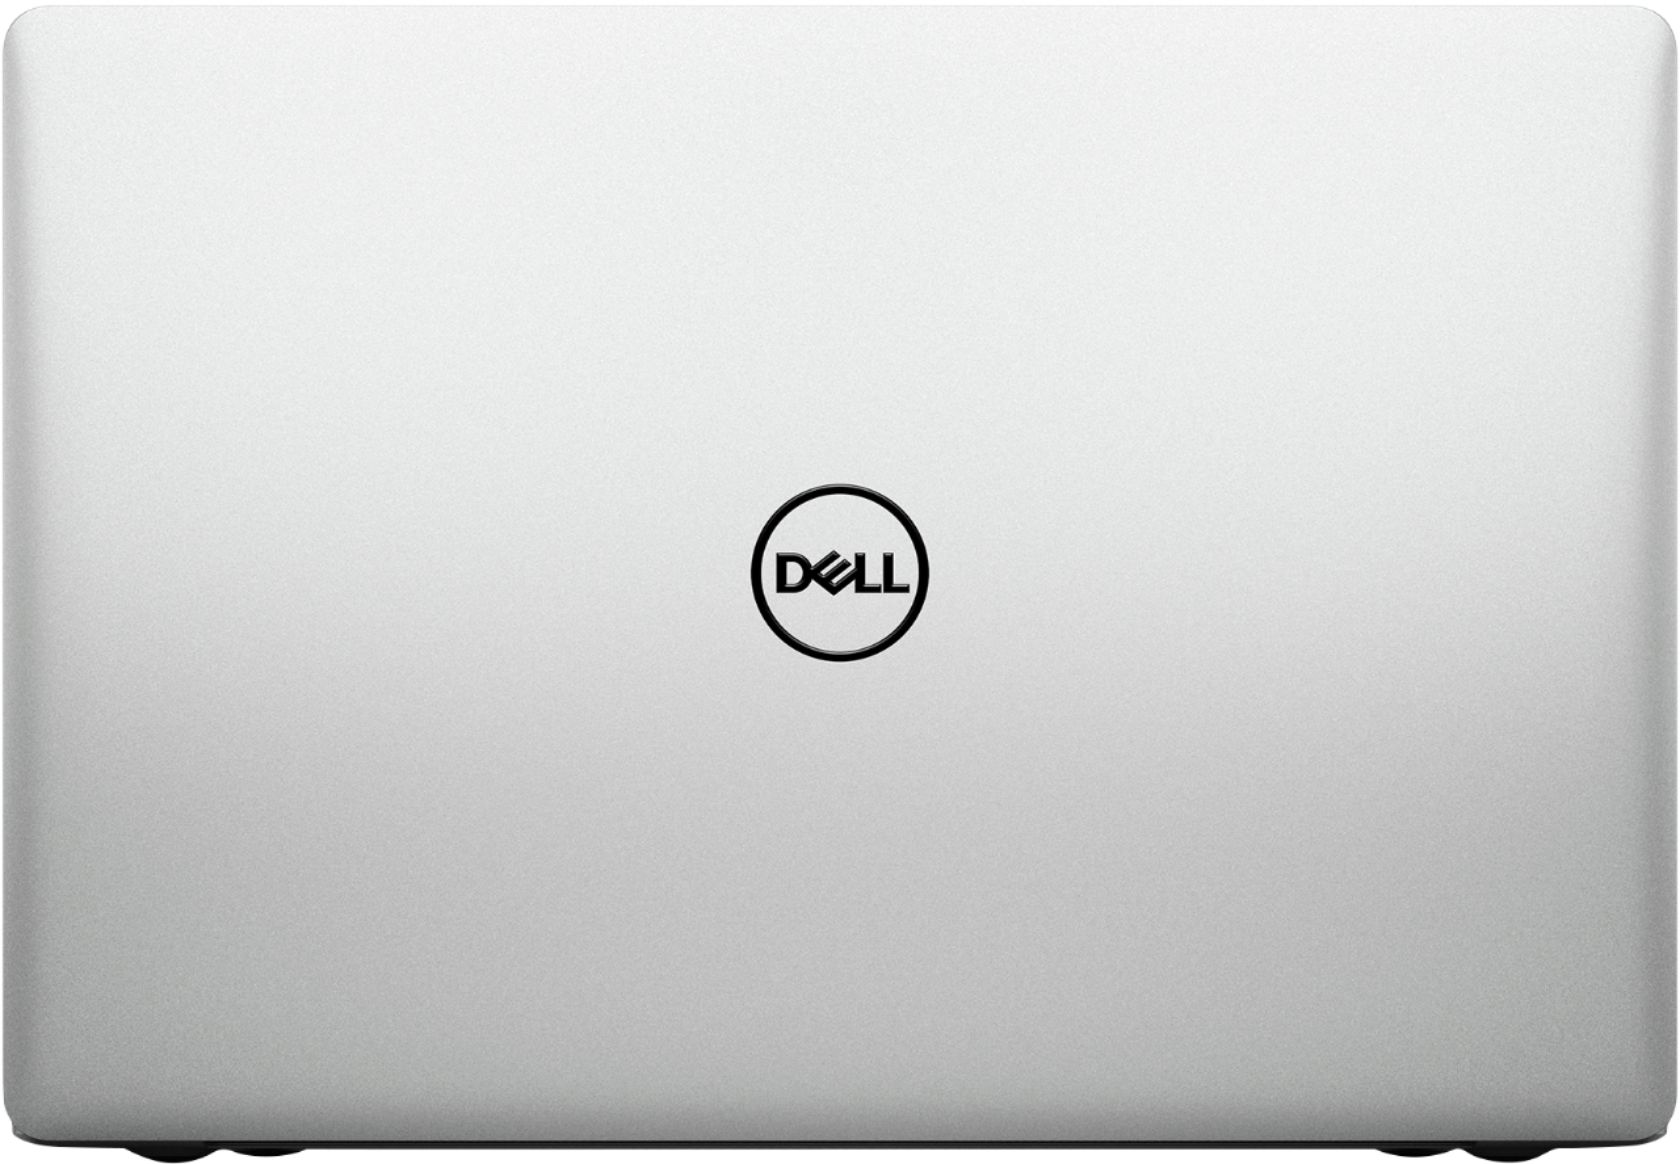 """Alt View Zoom 3. Dell - Geek Squad Certified Refurbished Inspiron 15.6"""" Touch-Screen Laptop - Intel Core i7 - 12GB Memory - 256GB SSD - Silver."""